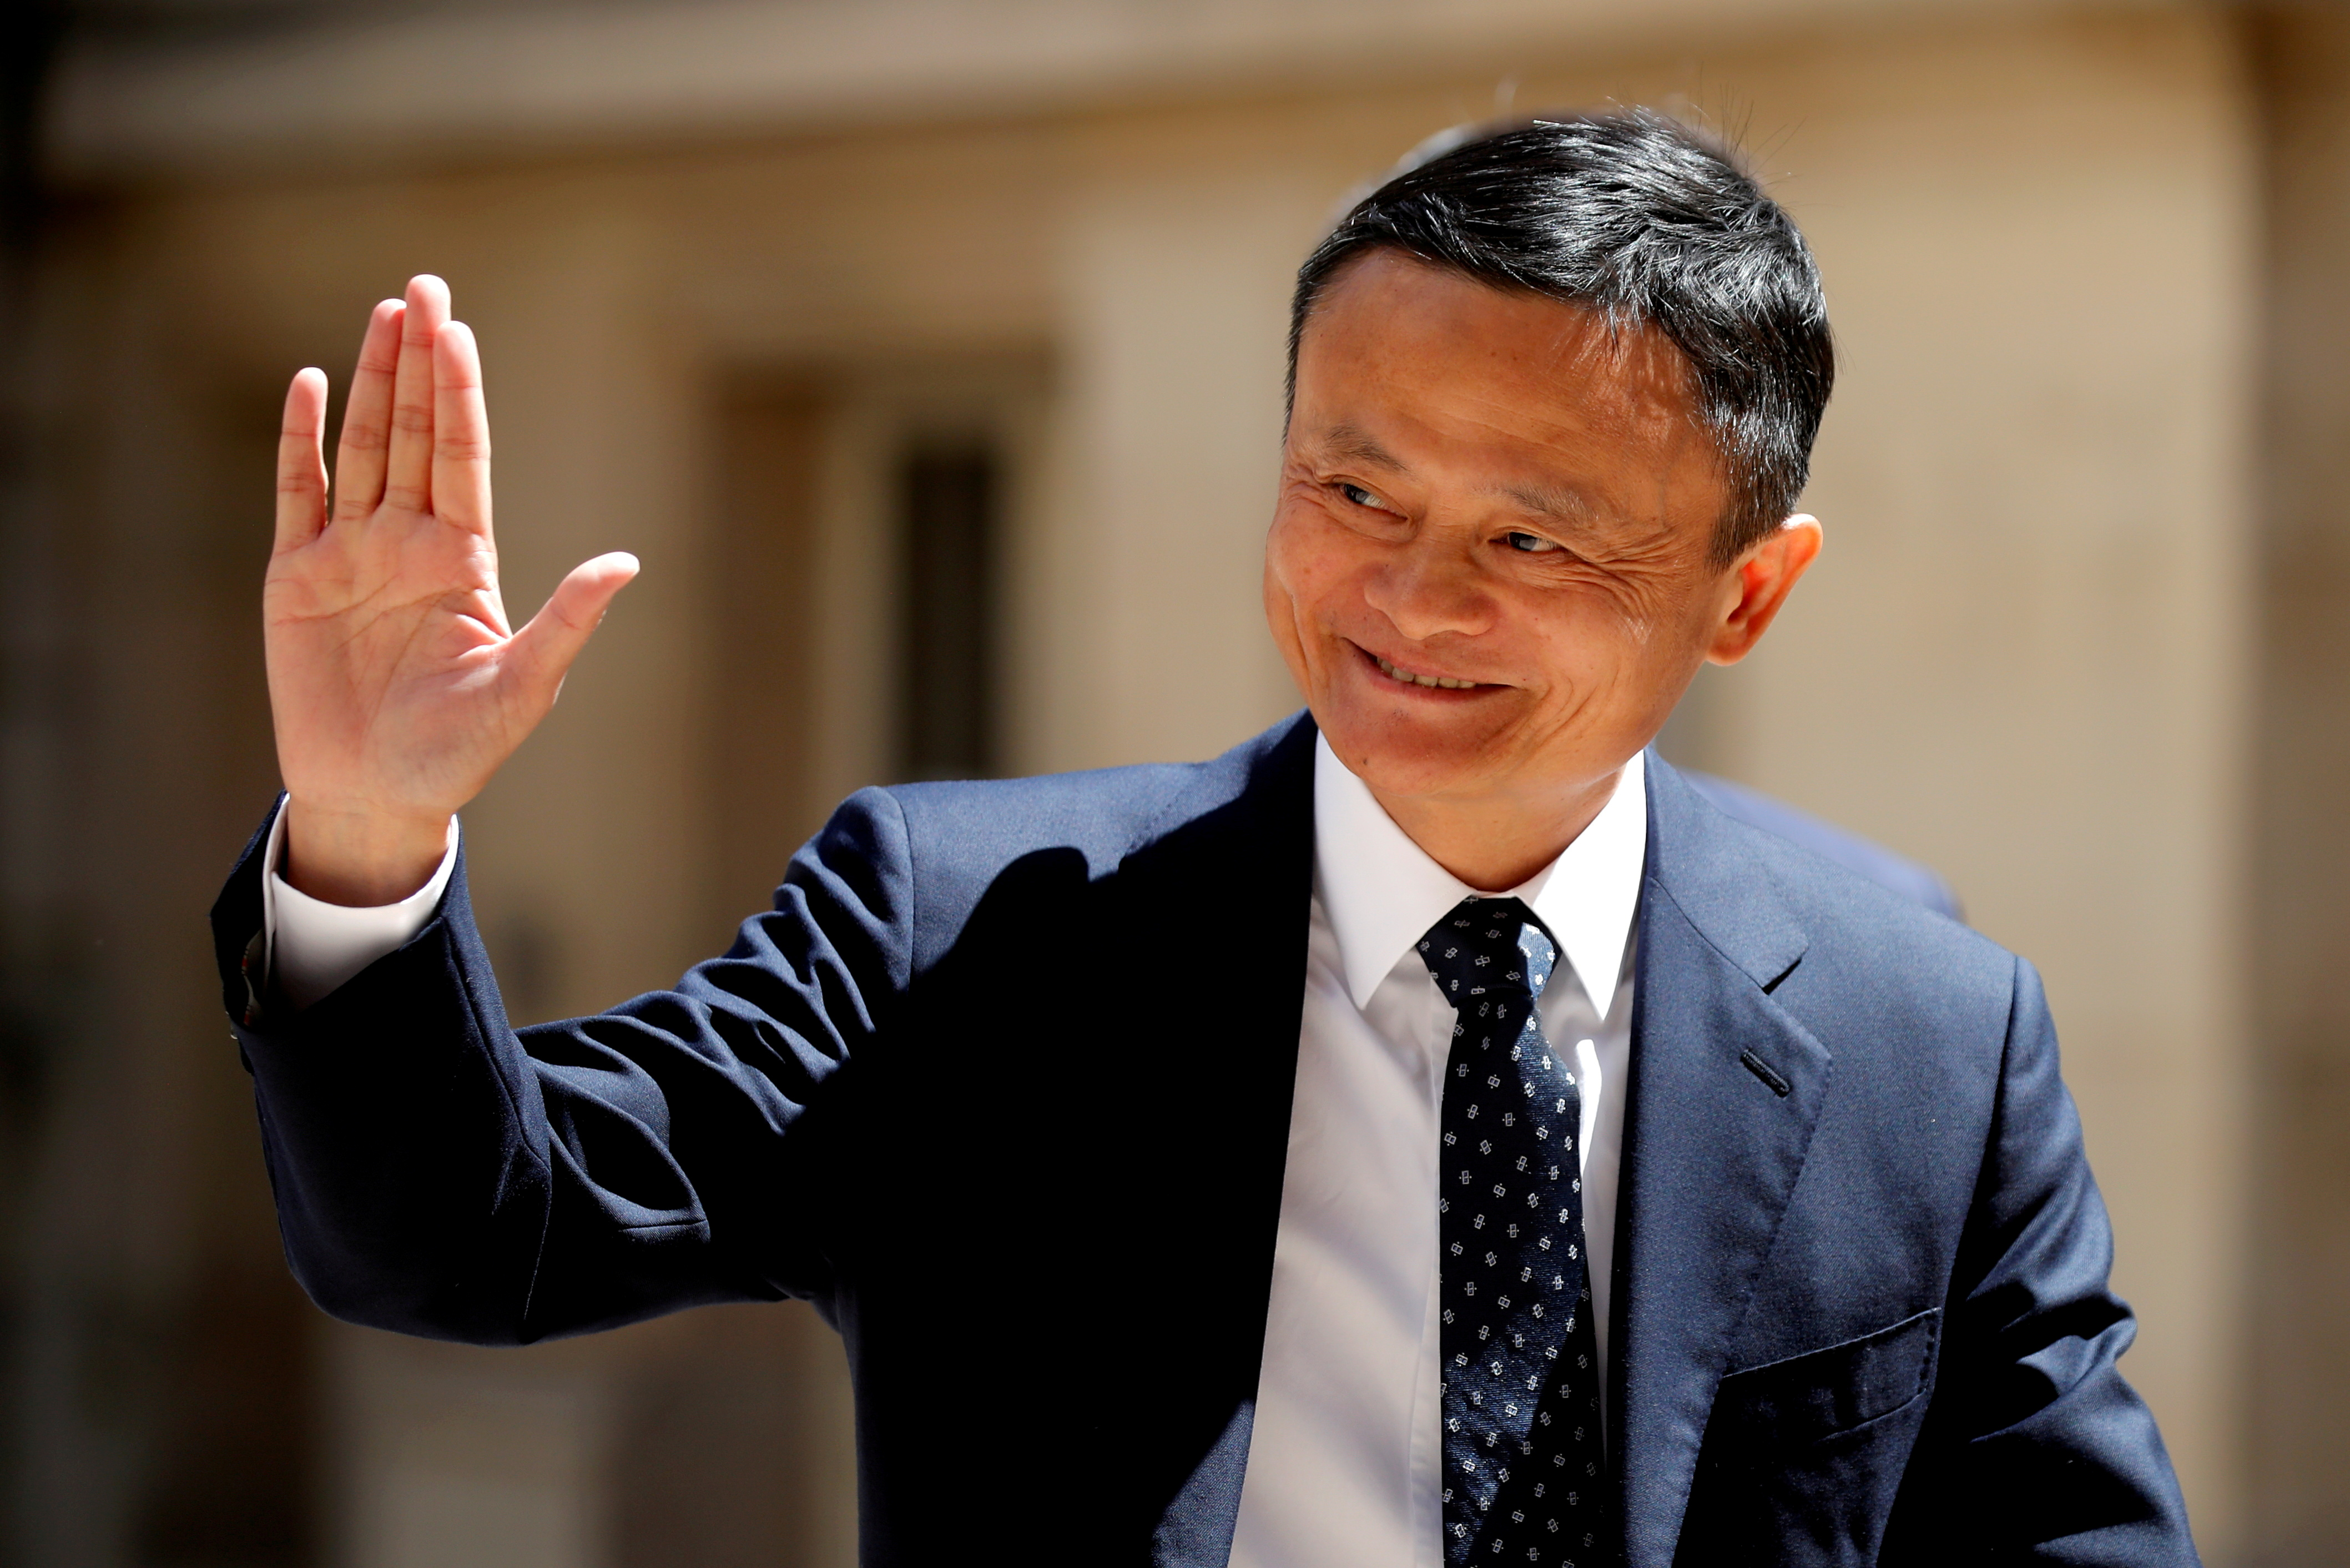 FILE PHOTO: Jack Ma, billionaire founder of Alibaba Group, arrives at the